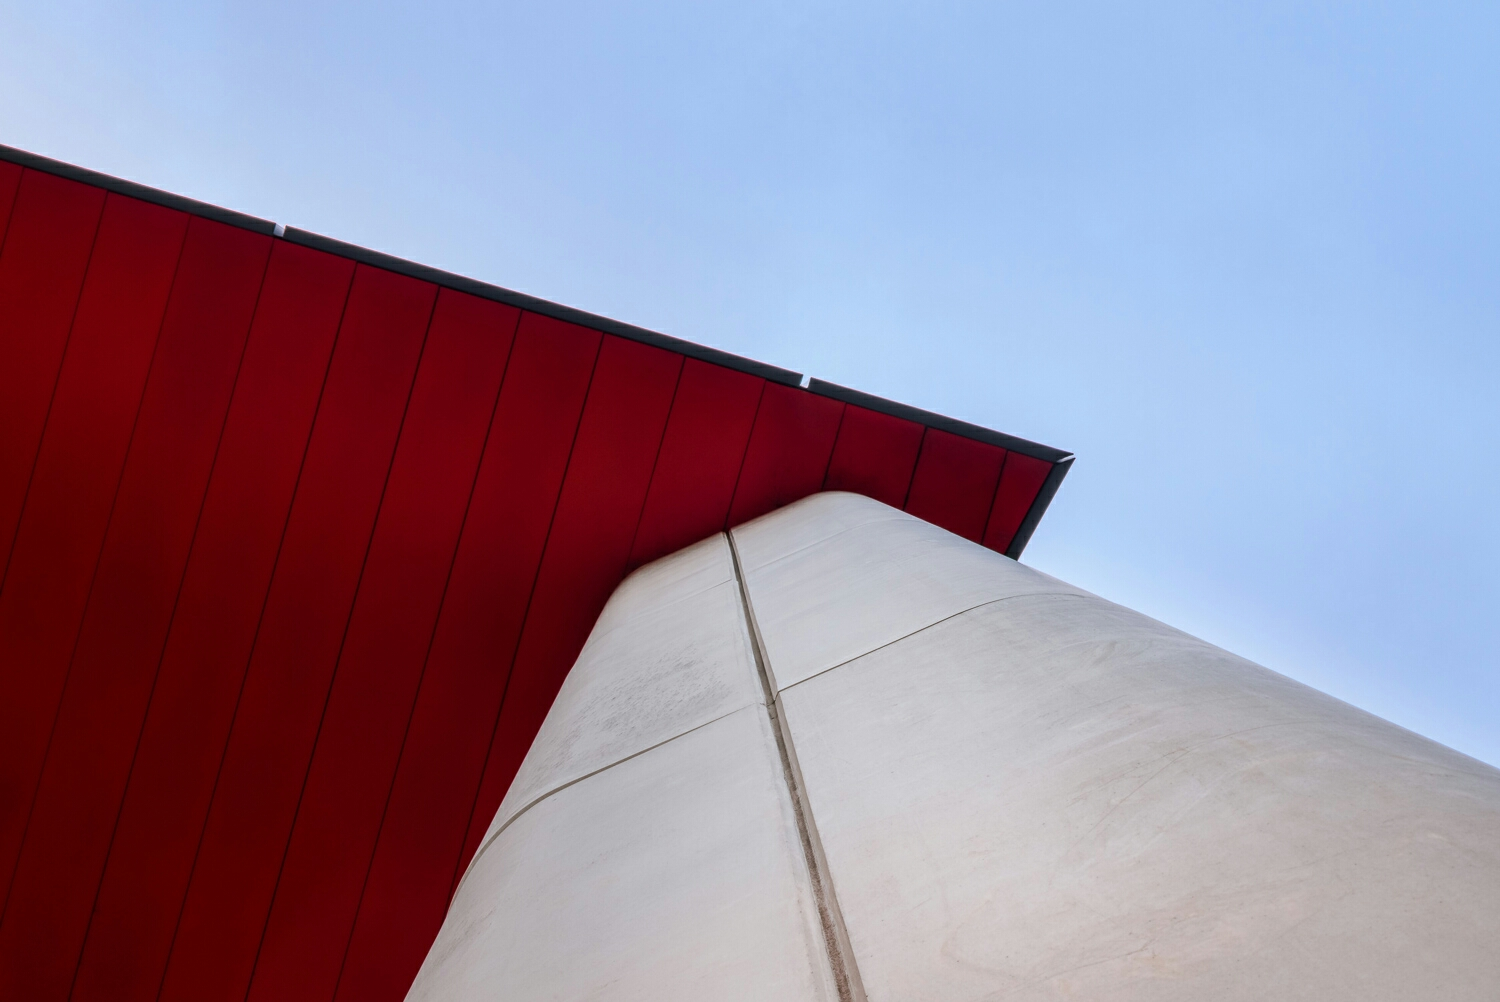 Abstract-Strathclyde-Univeristy-Looking-Up